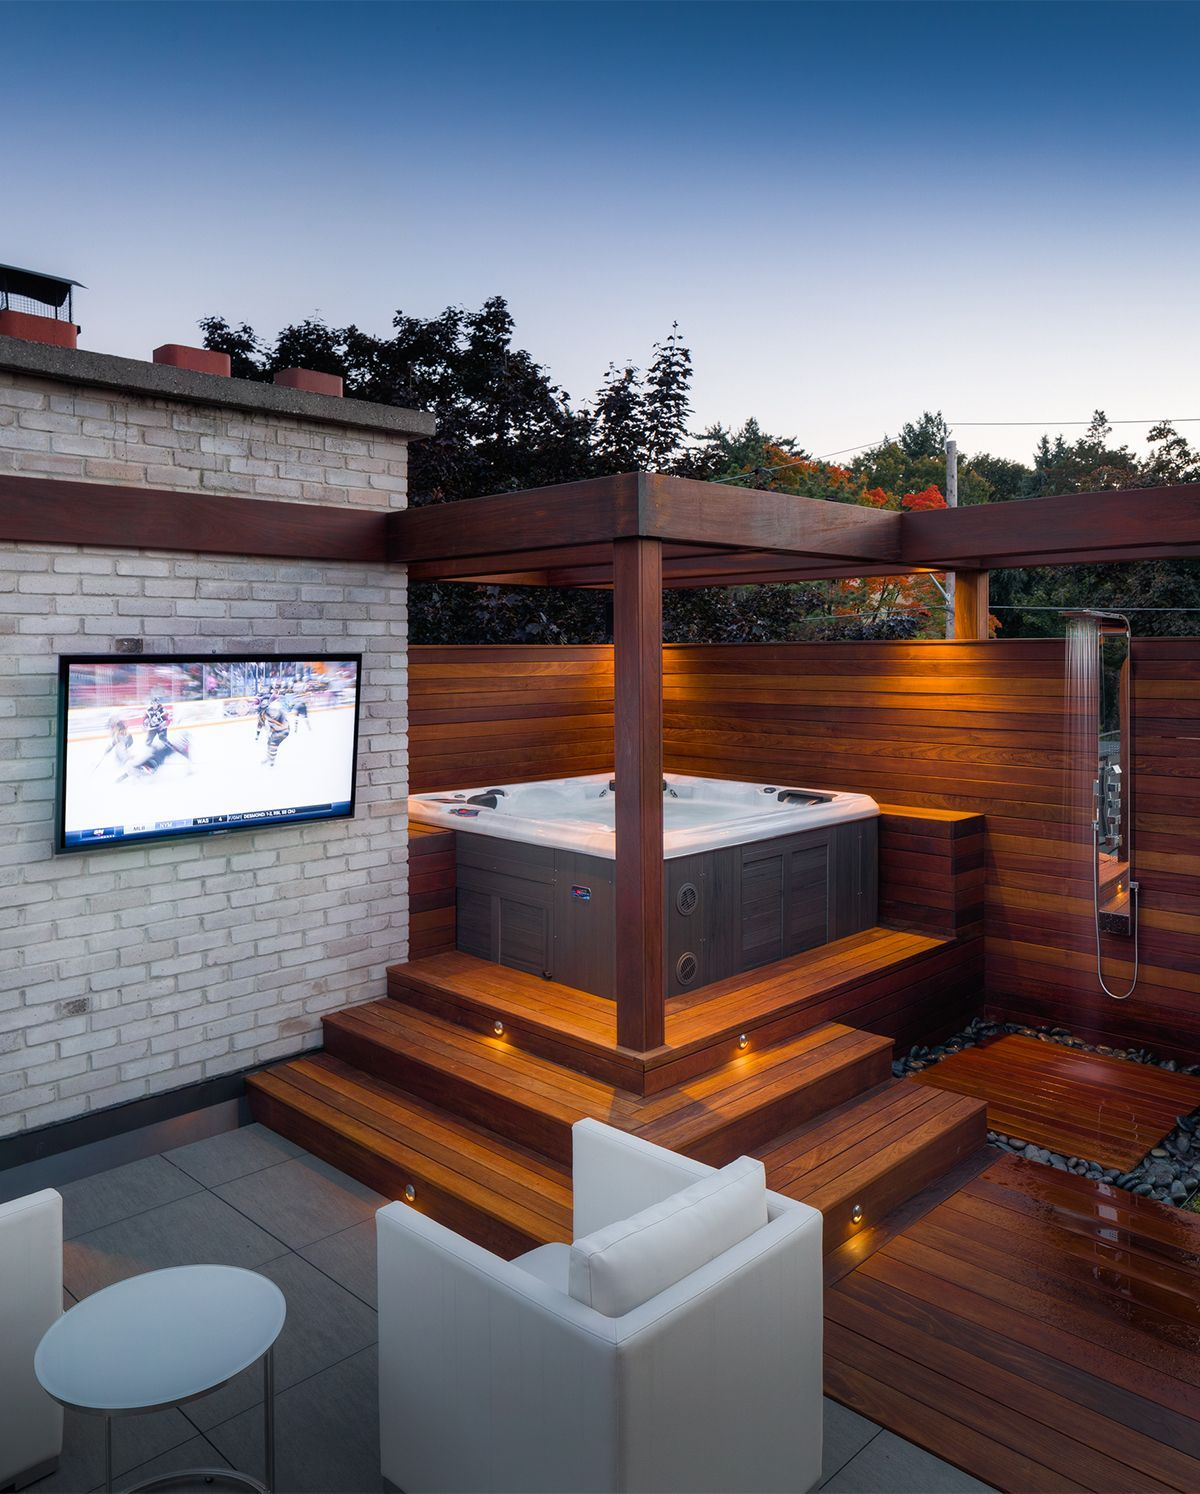 We Love This Modern Hot Tub Design With Outdoor Tv And Shower Hot Tub Backyard Hot Tub Patio Hot Tub Gazebo Modern outdoor hot tub